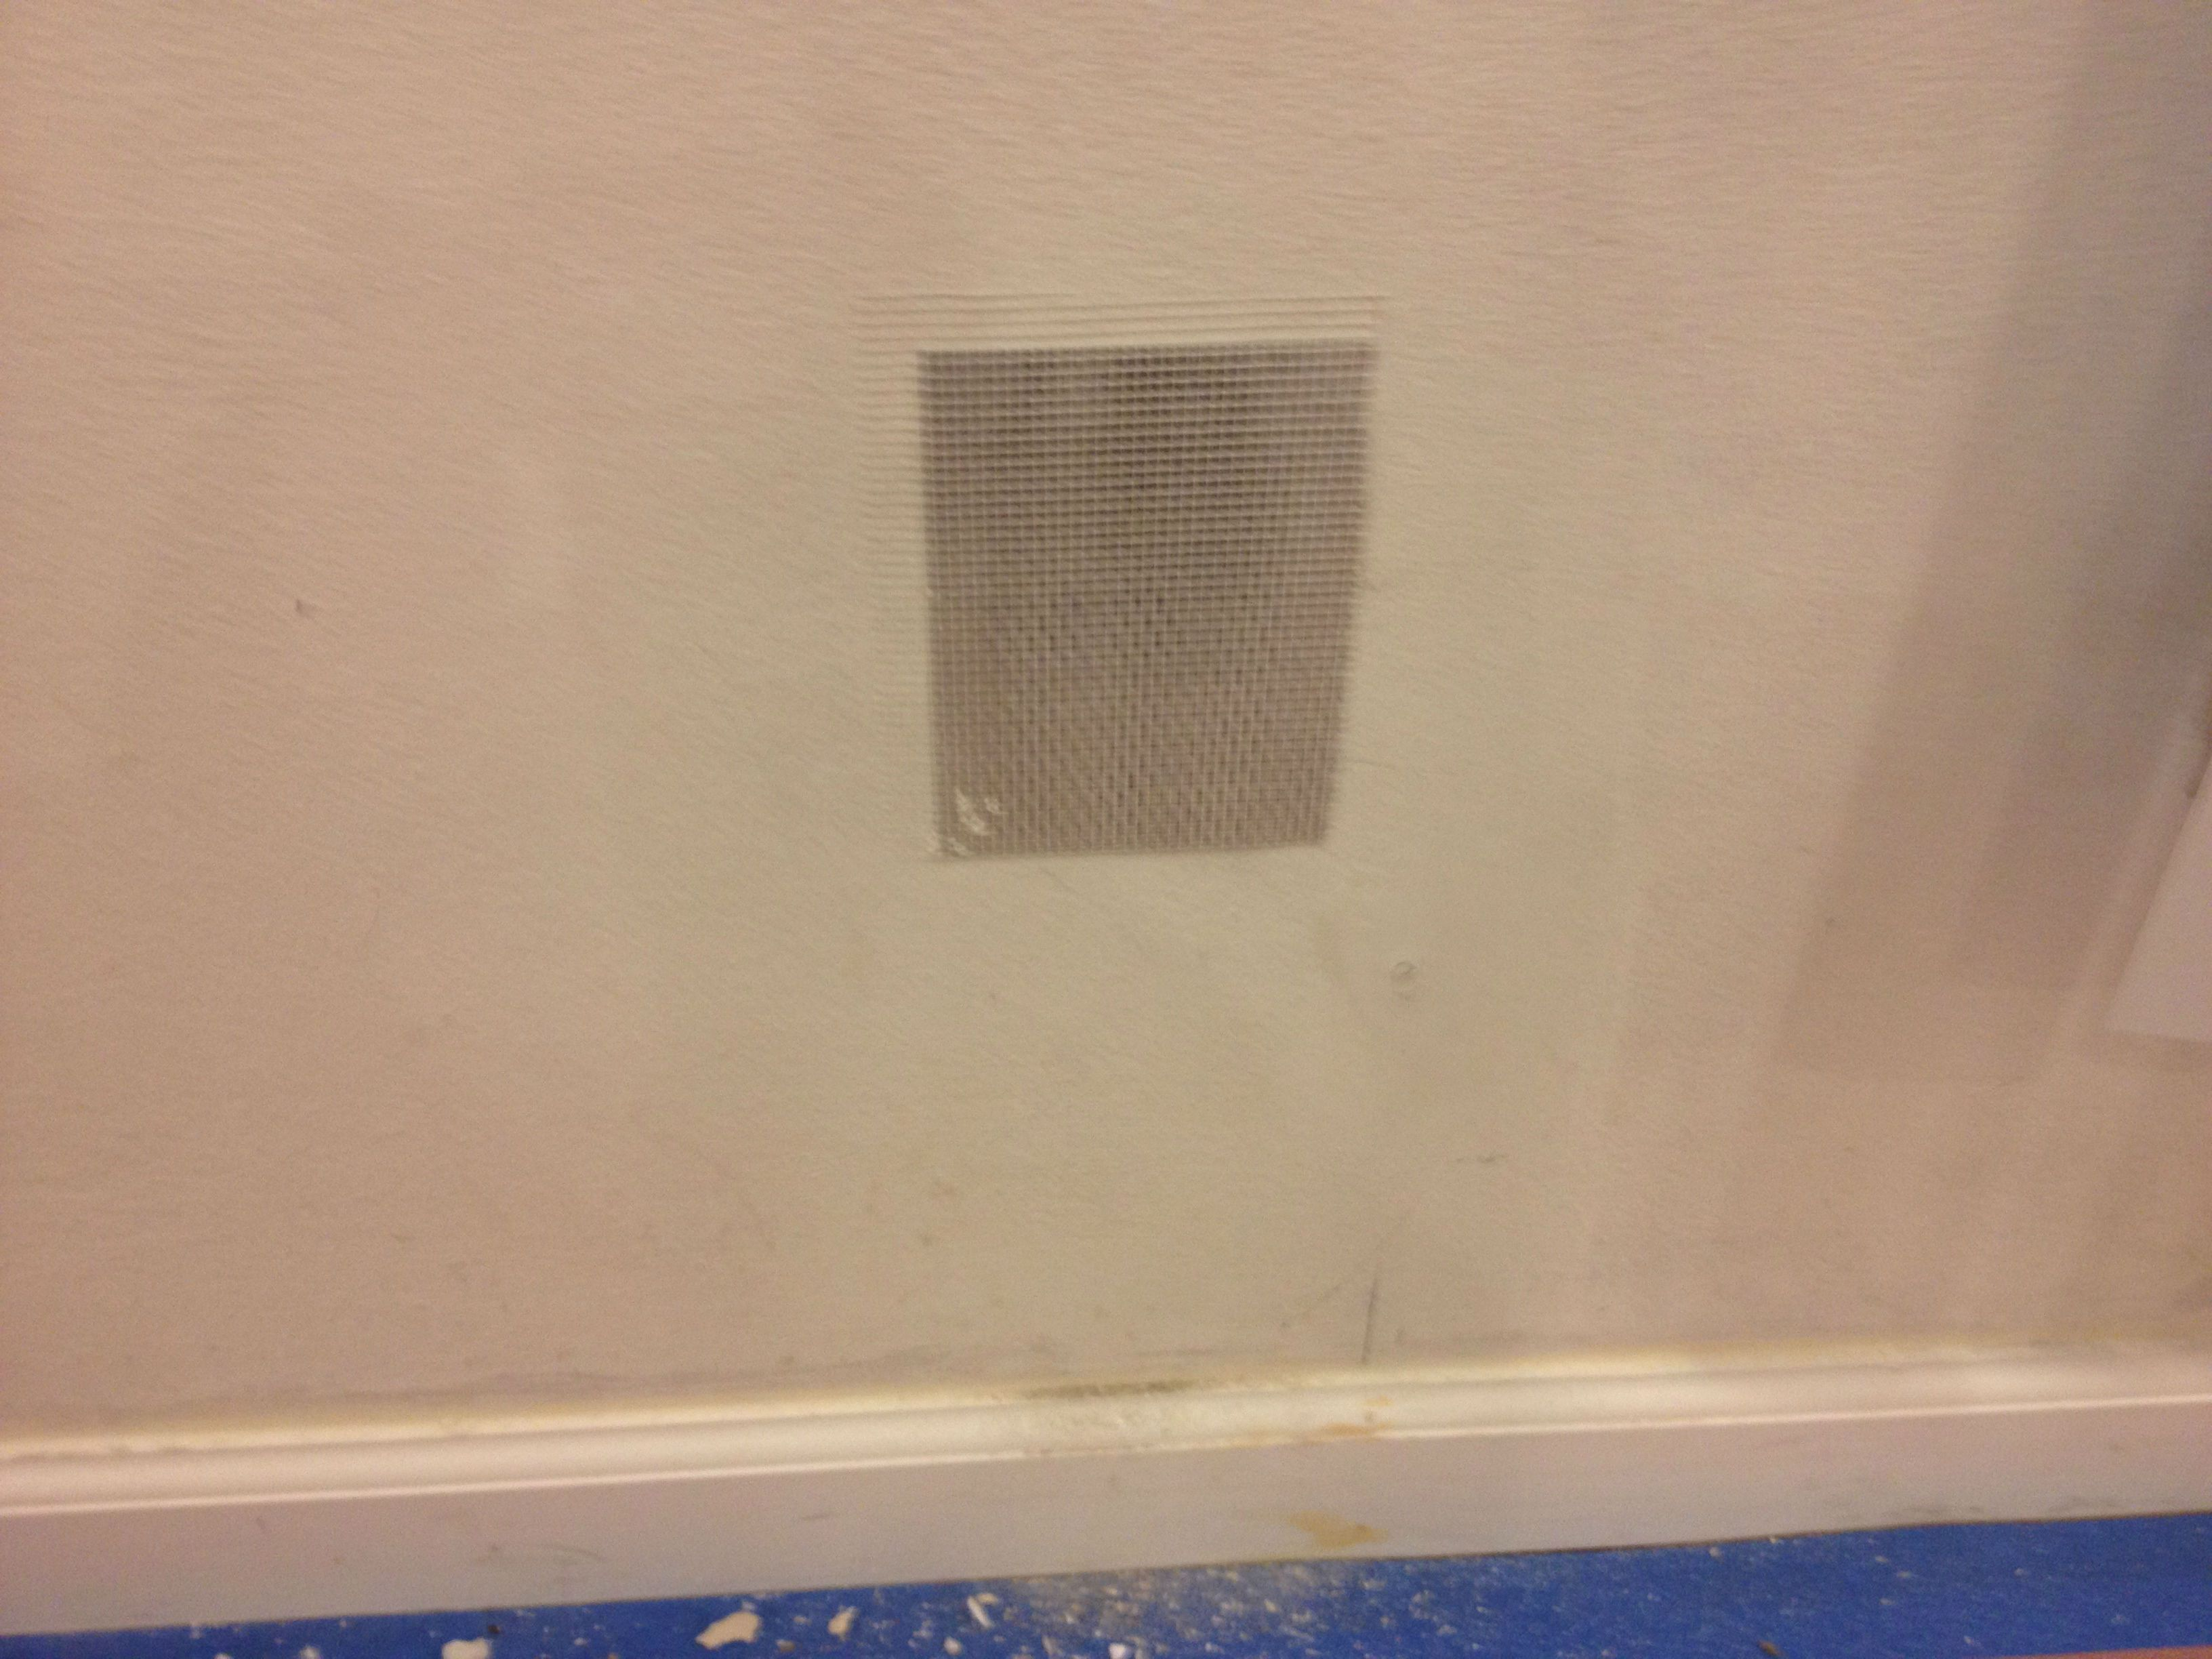 Installed A Simple Aluminum Drywall Patch To Cover An Old Cable Tv Outlet How To Patch Drywall Installation Cable Tv